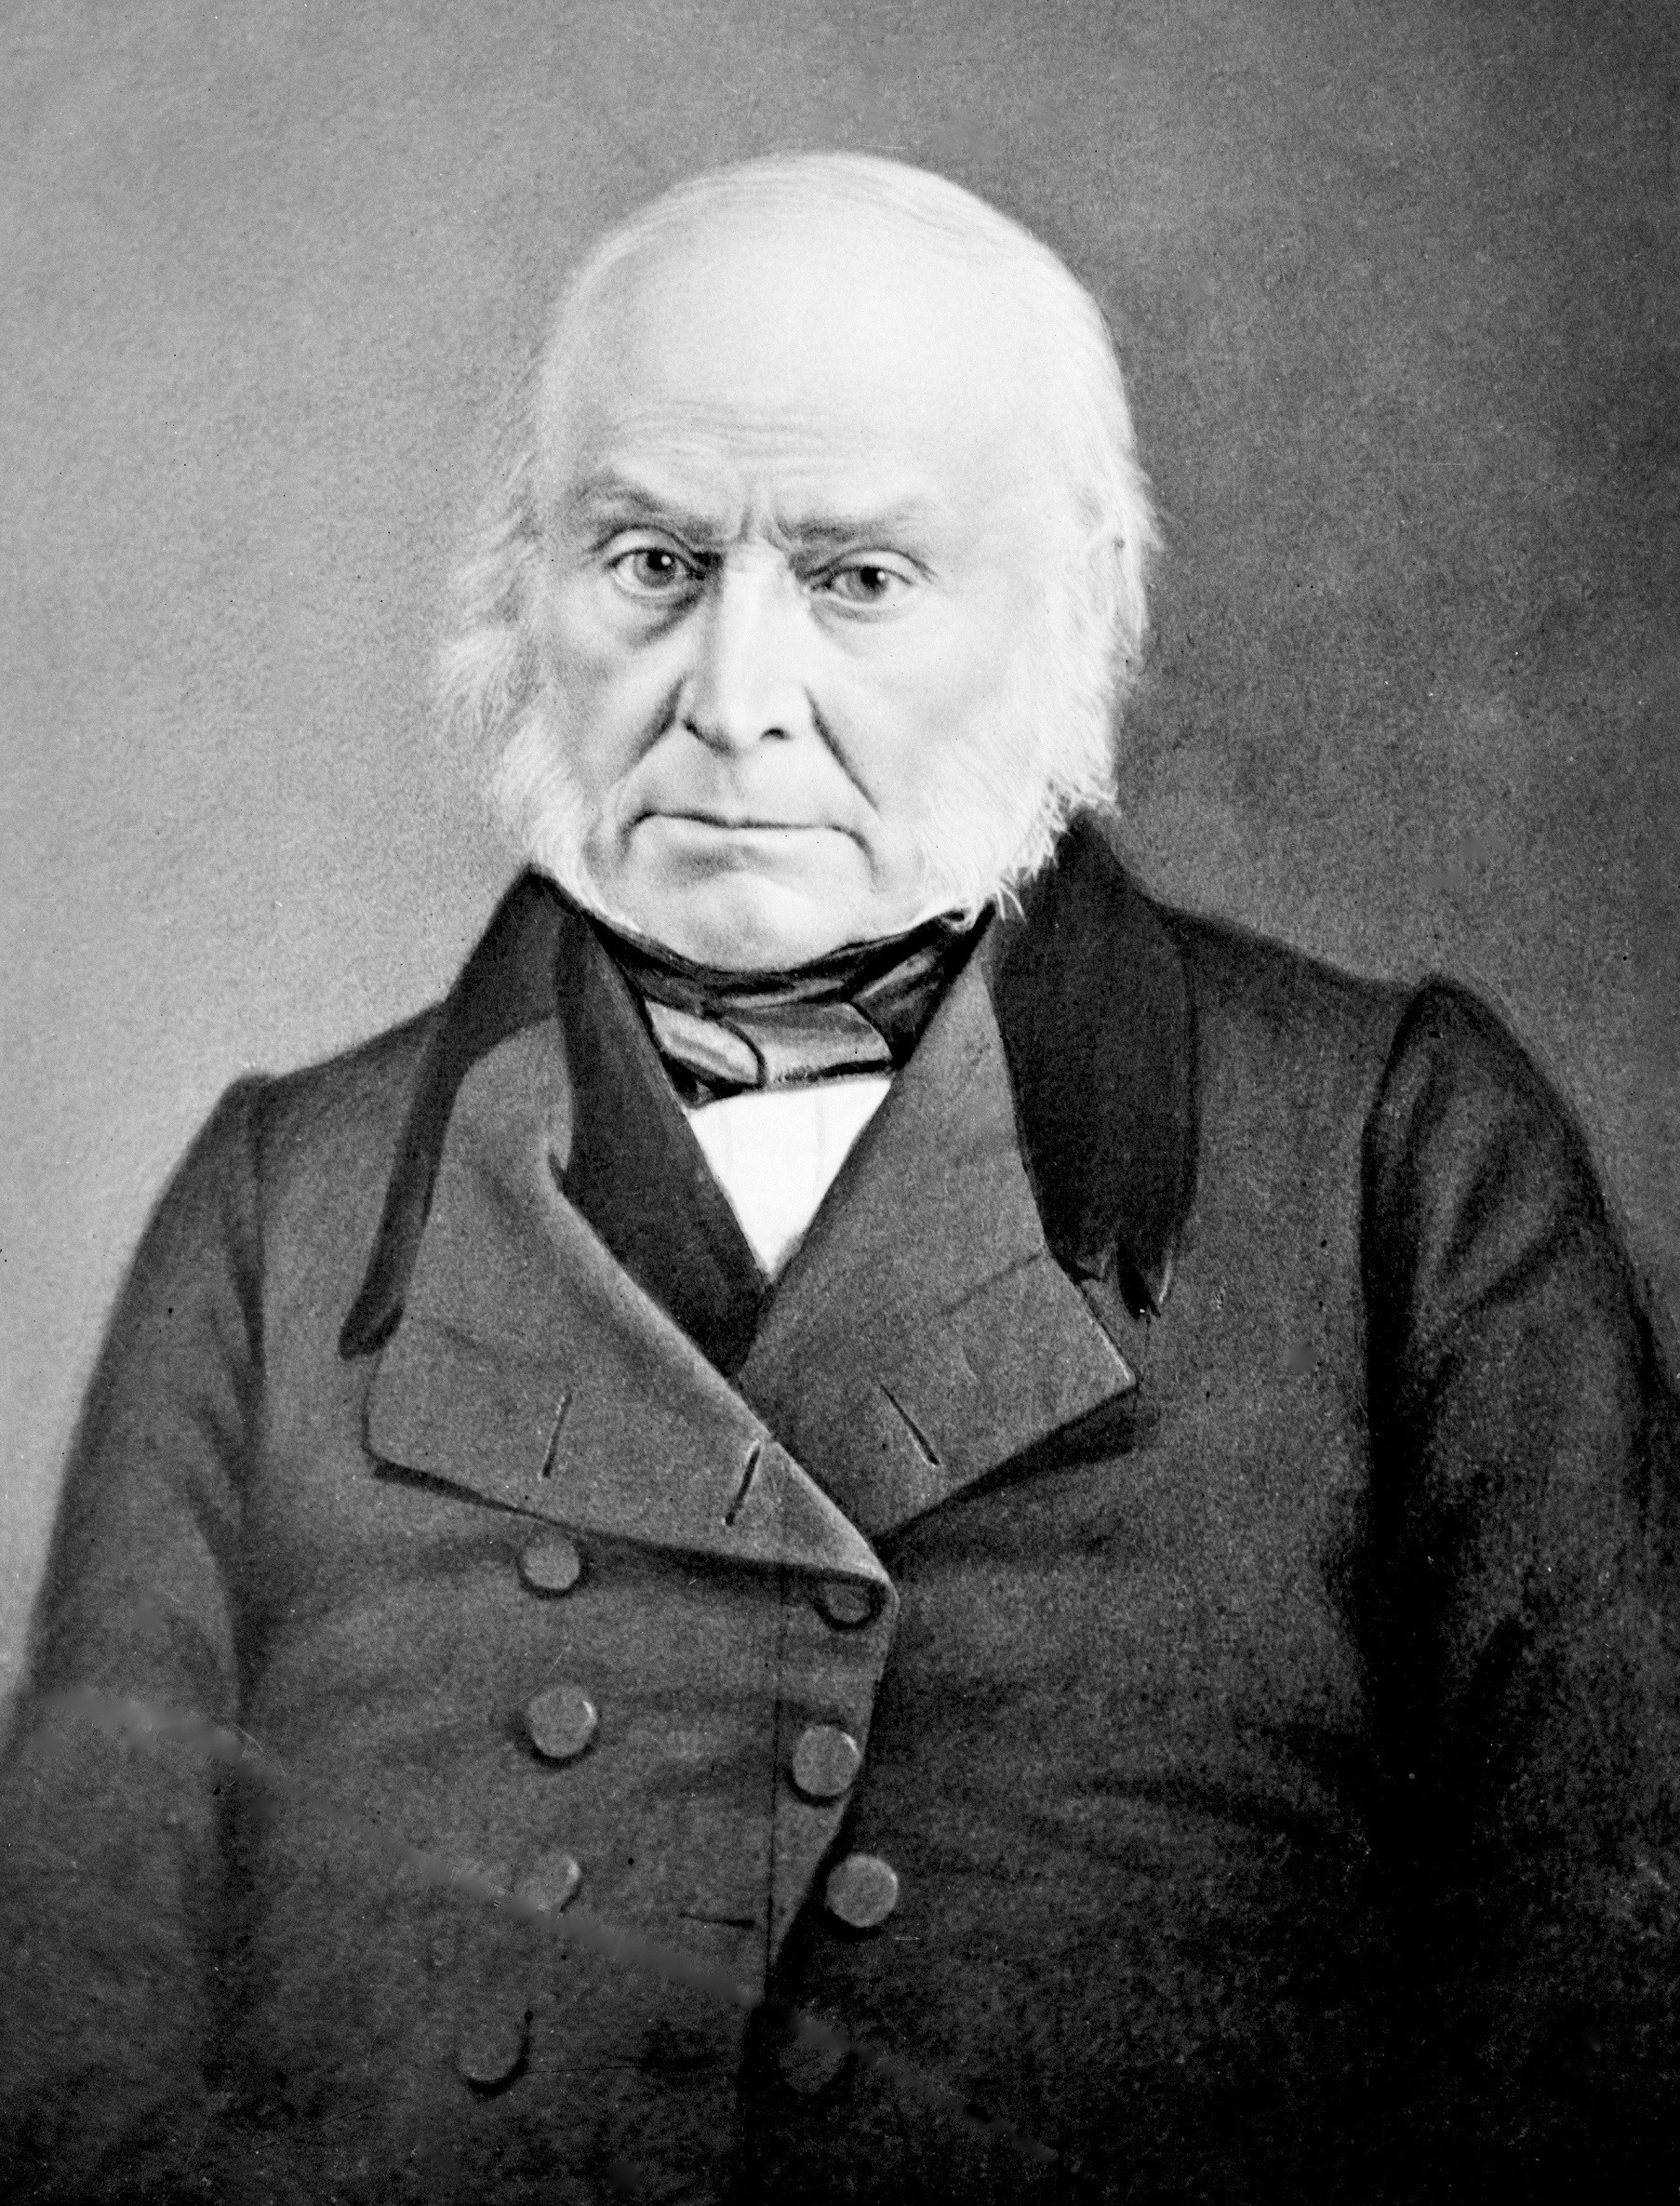 John Quincy Adams, sixth president of the U.S.